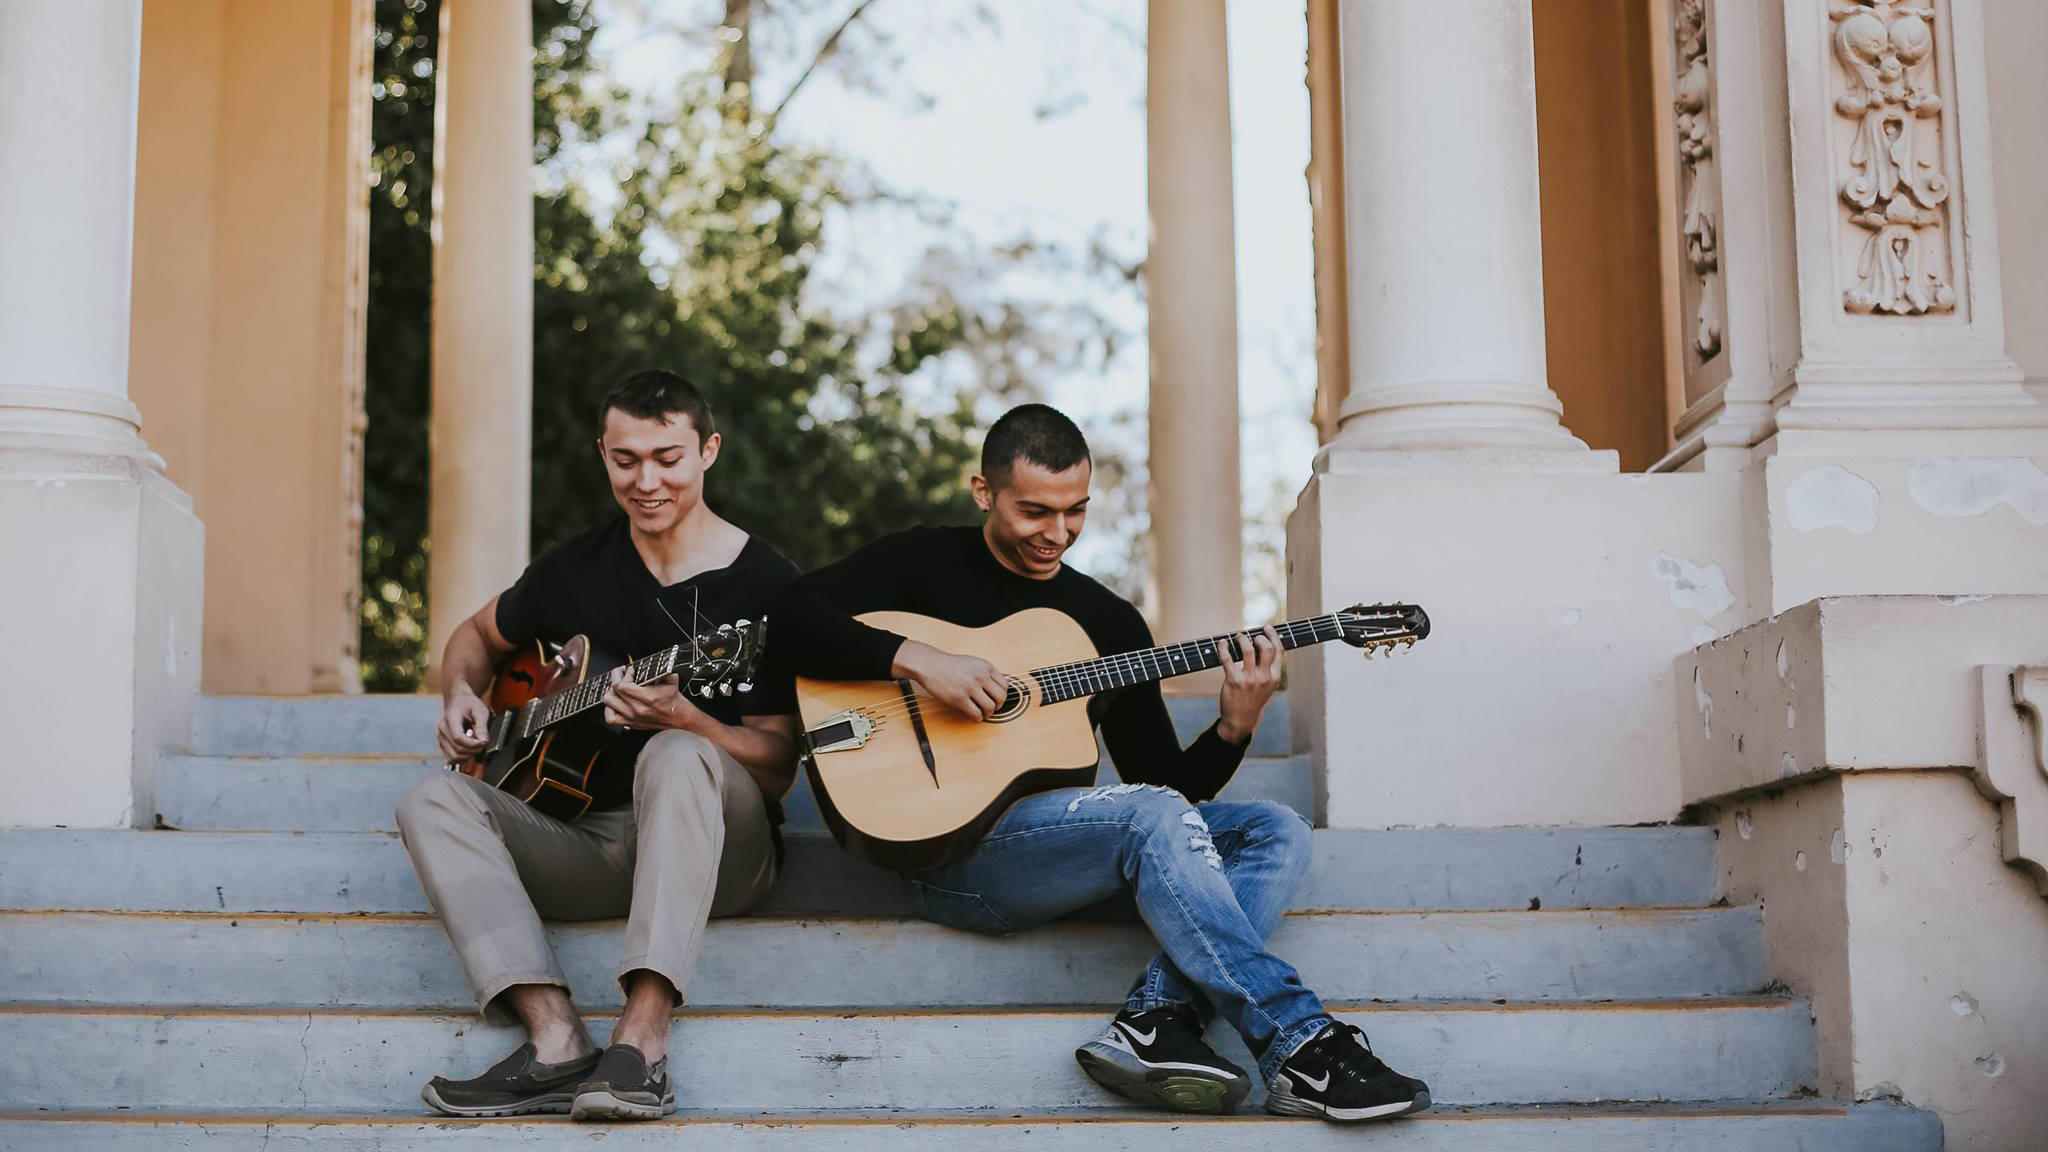 Alex Ciavarelli and Rudy Marquez are the acoustic swing duo The Django Shredders.